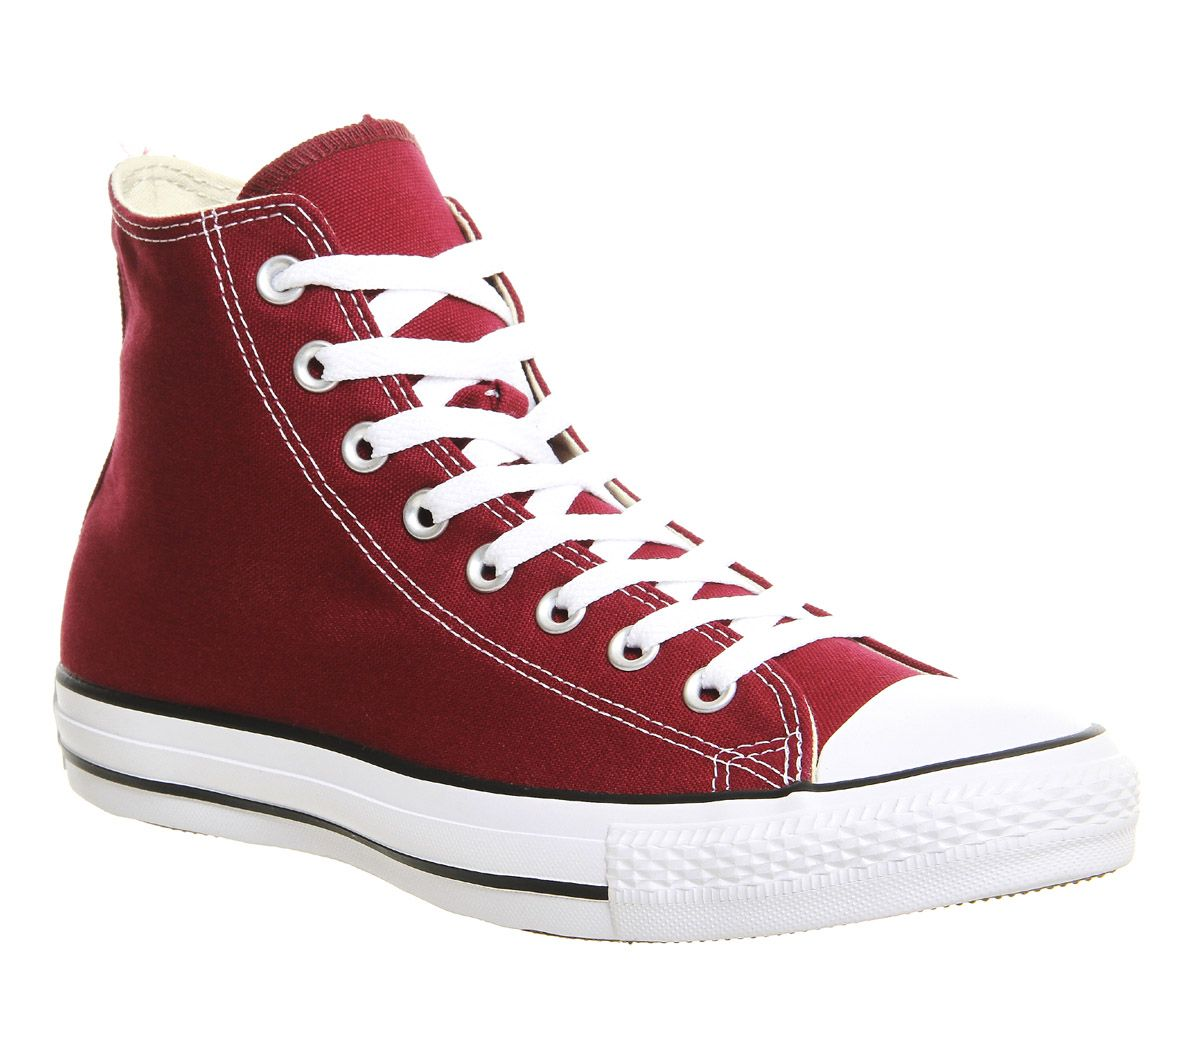 6c039c33e46d Converse All Star Hi Maroon - Unisex Sports